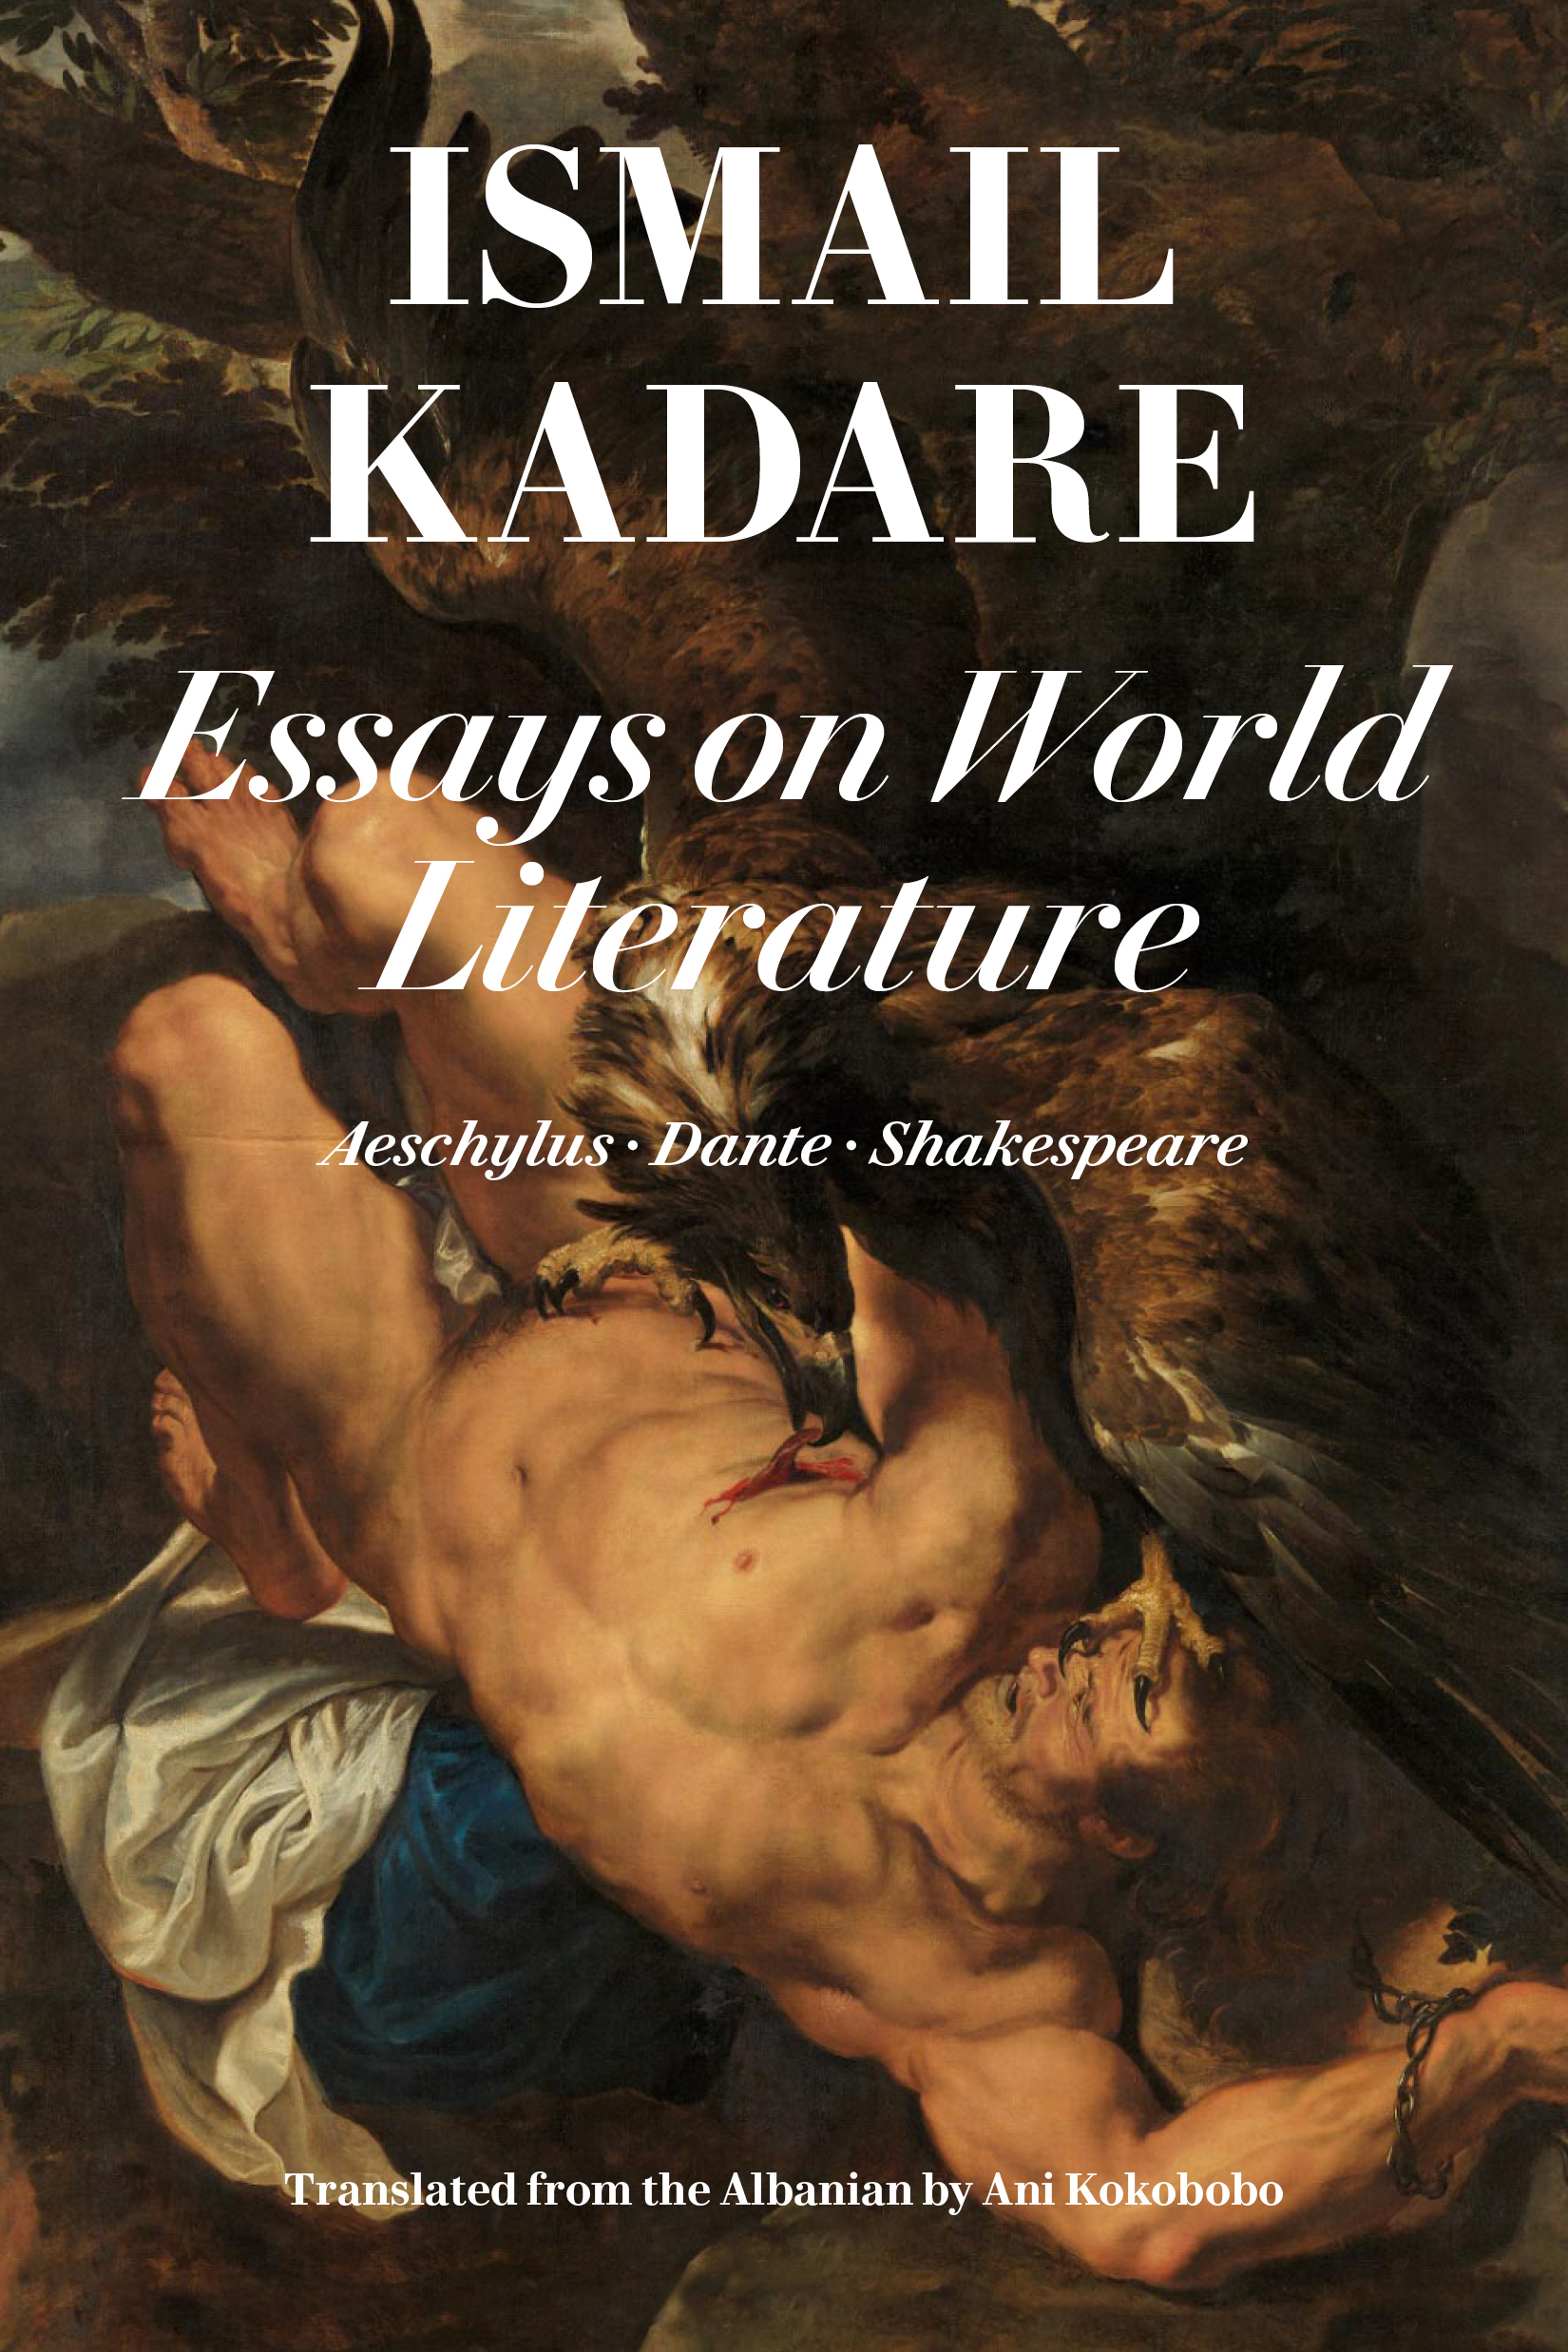 essays on world literature shakespeare  aeschylus  dante  restless books